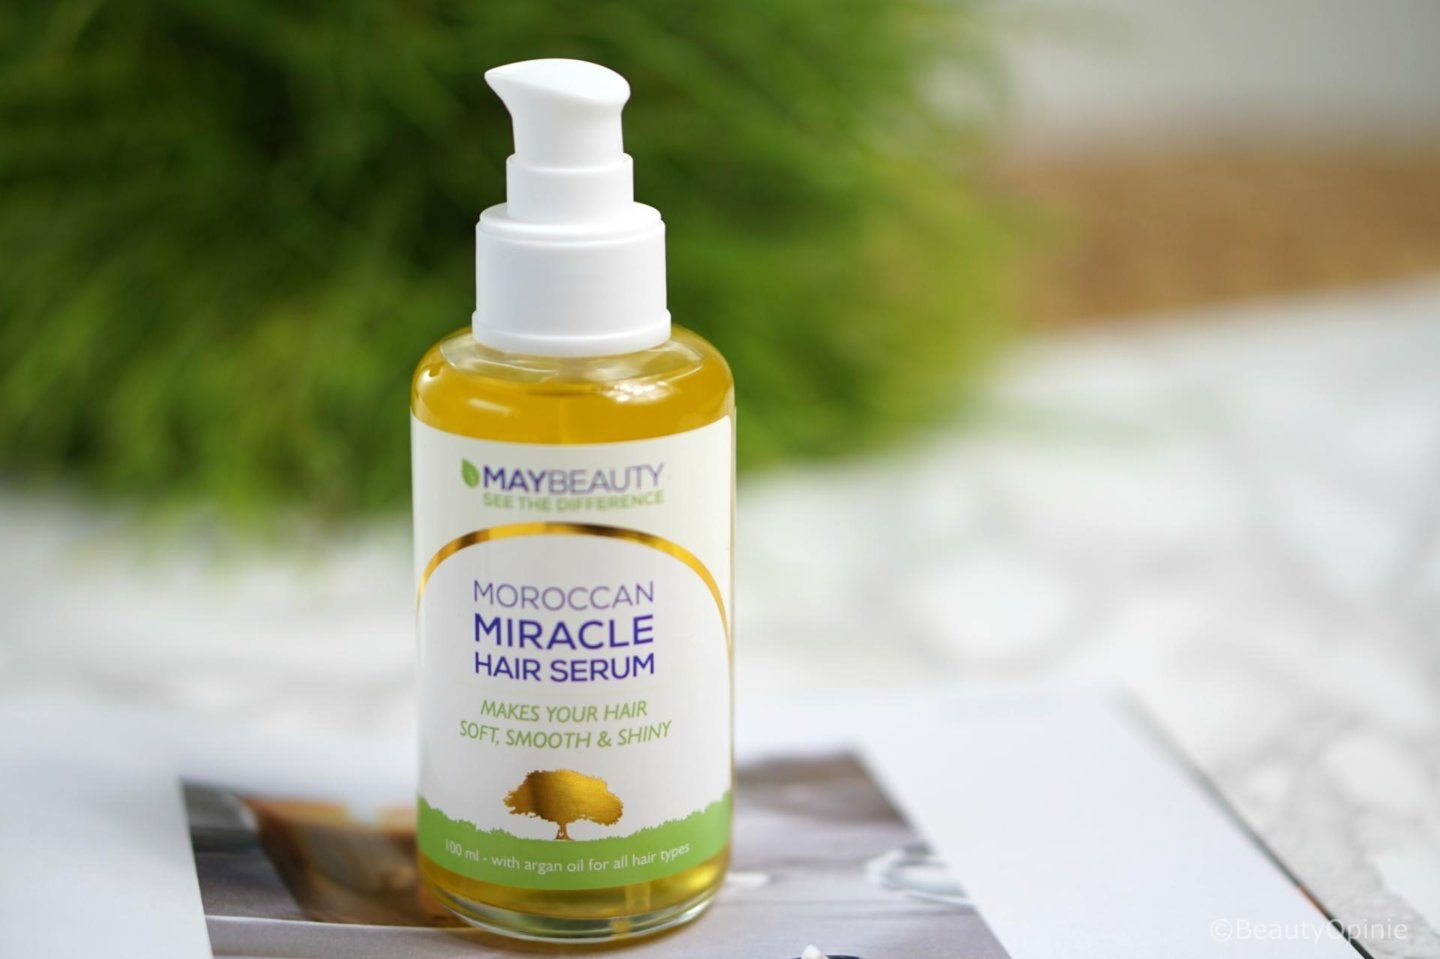 Maybeauty haarserum: Moroccan Miracle